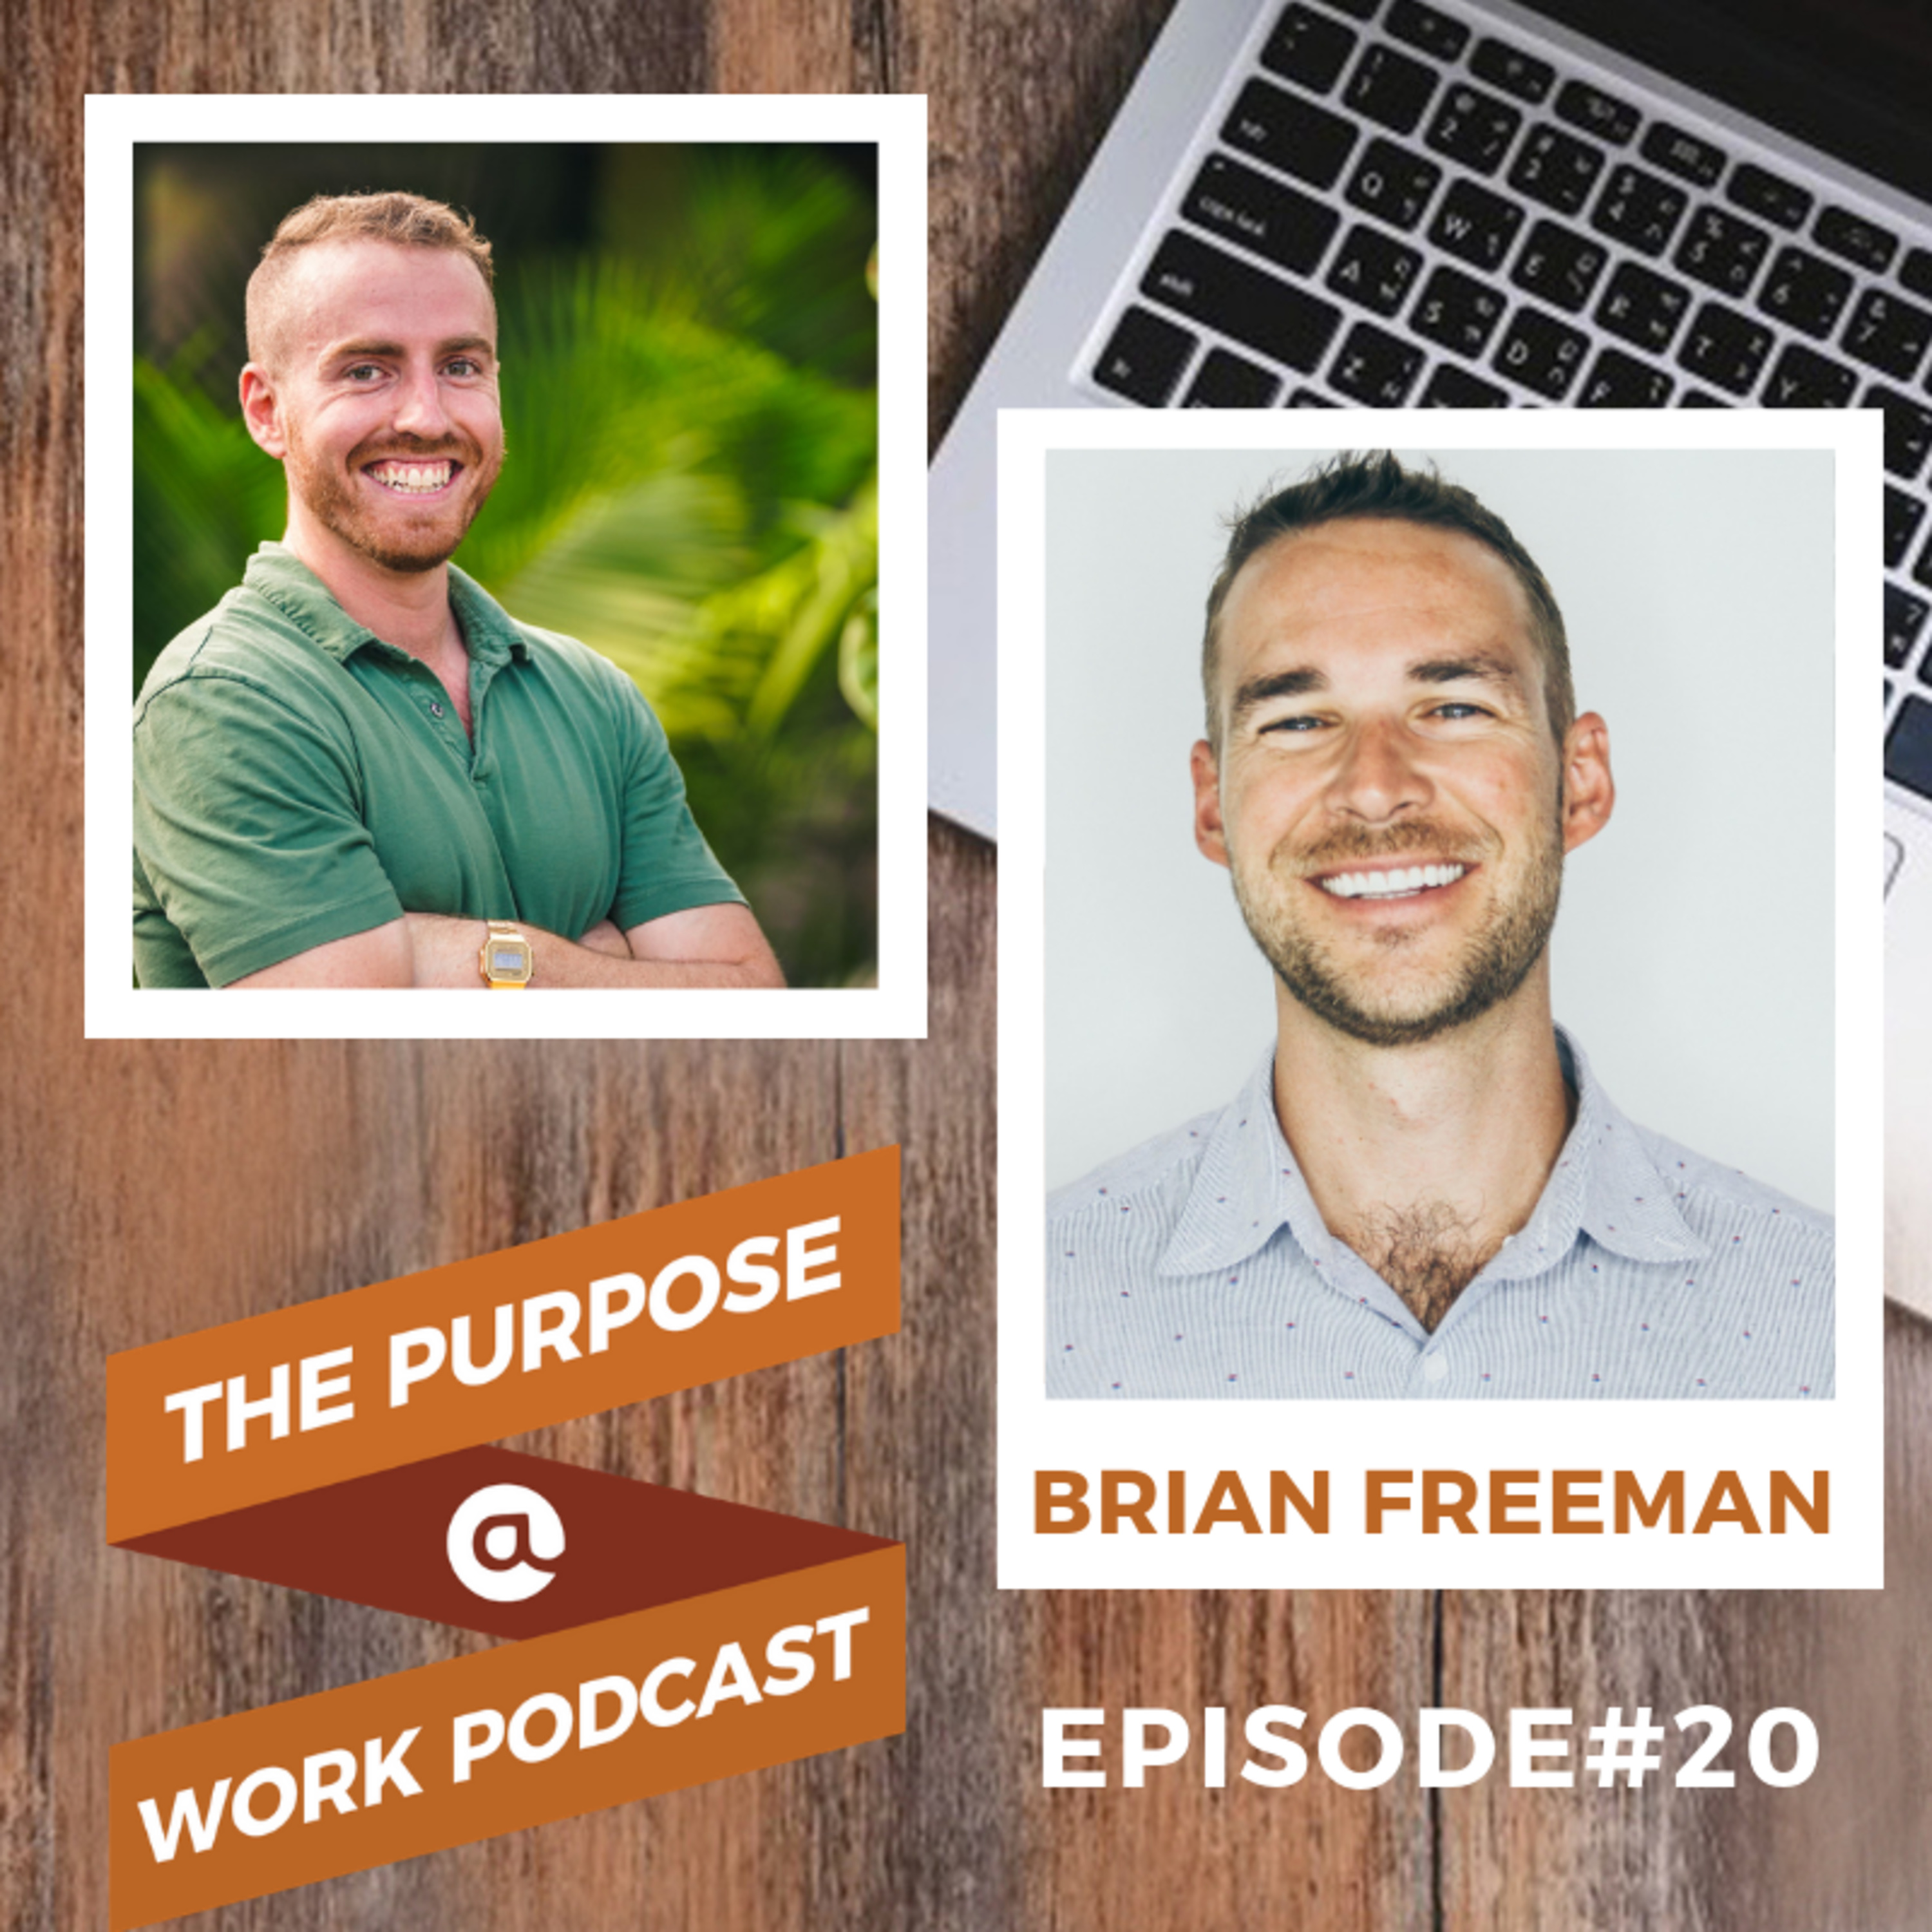 #20 Brian Freeman - Founder/CEO @Heartbeat: The Power of Emotional Resilience